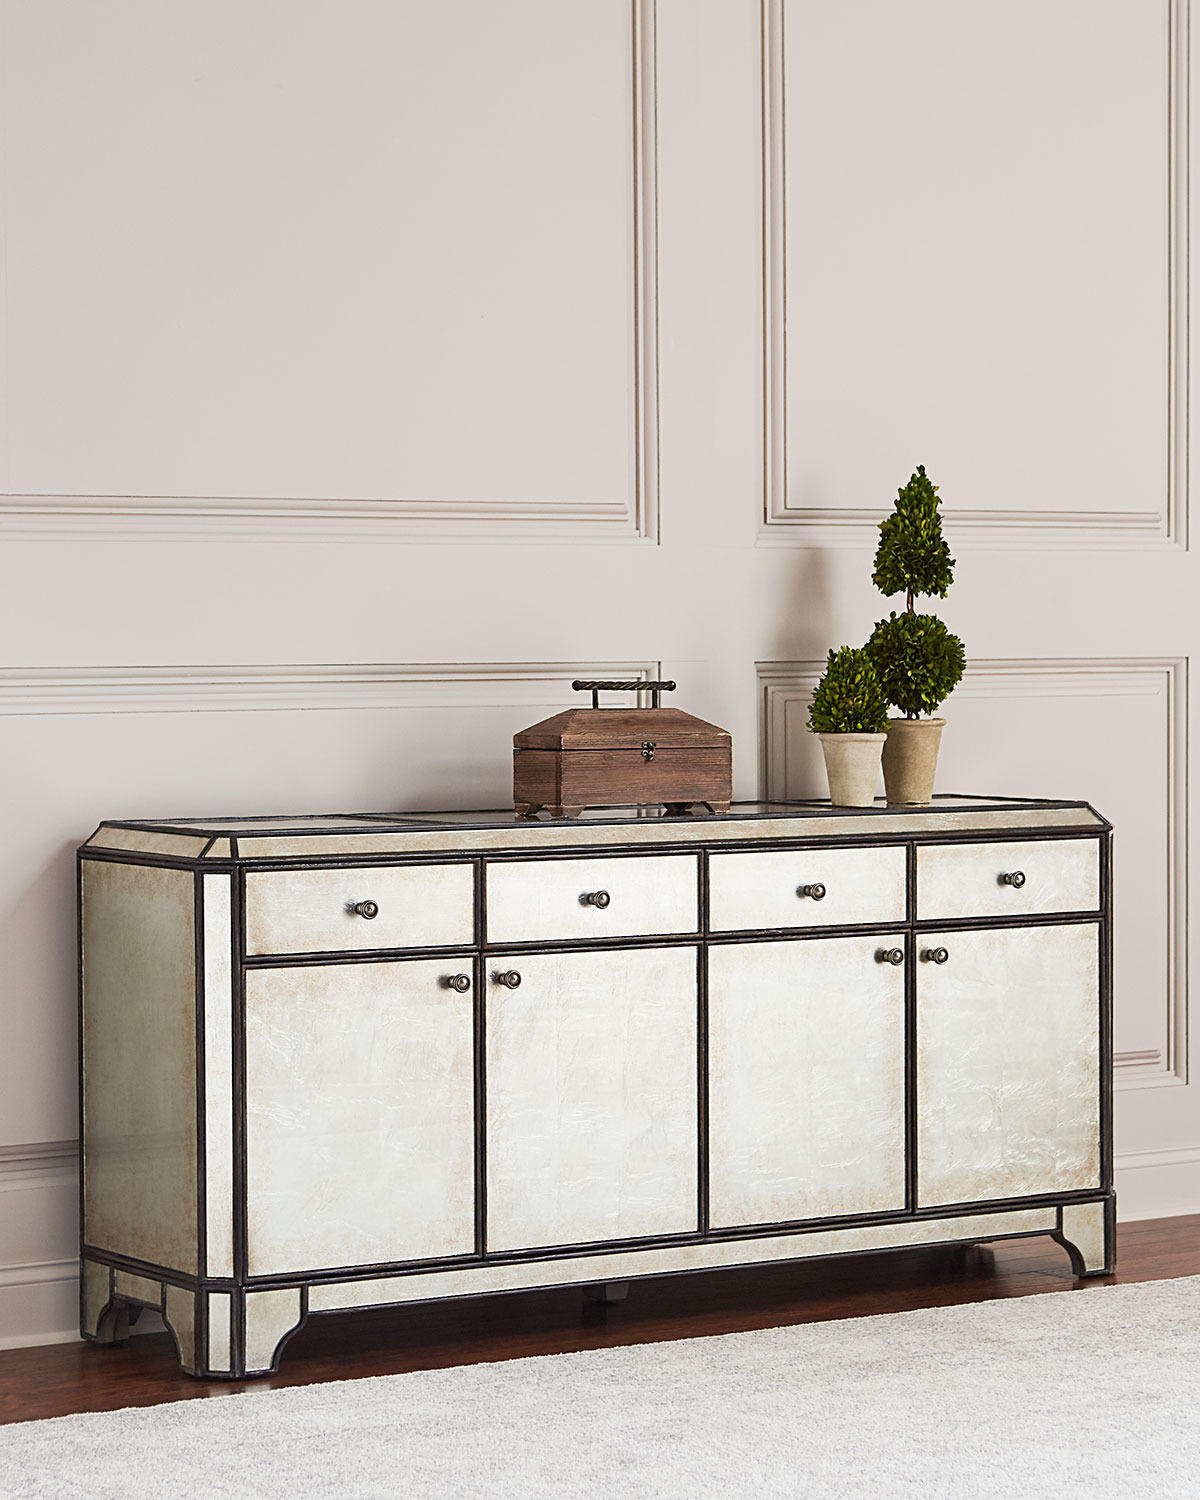 'Hooker Furniture Garth Eglomise Entertainment Console